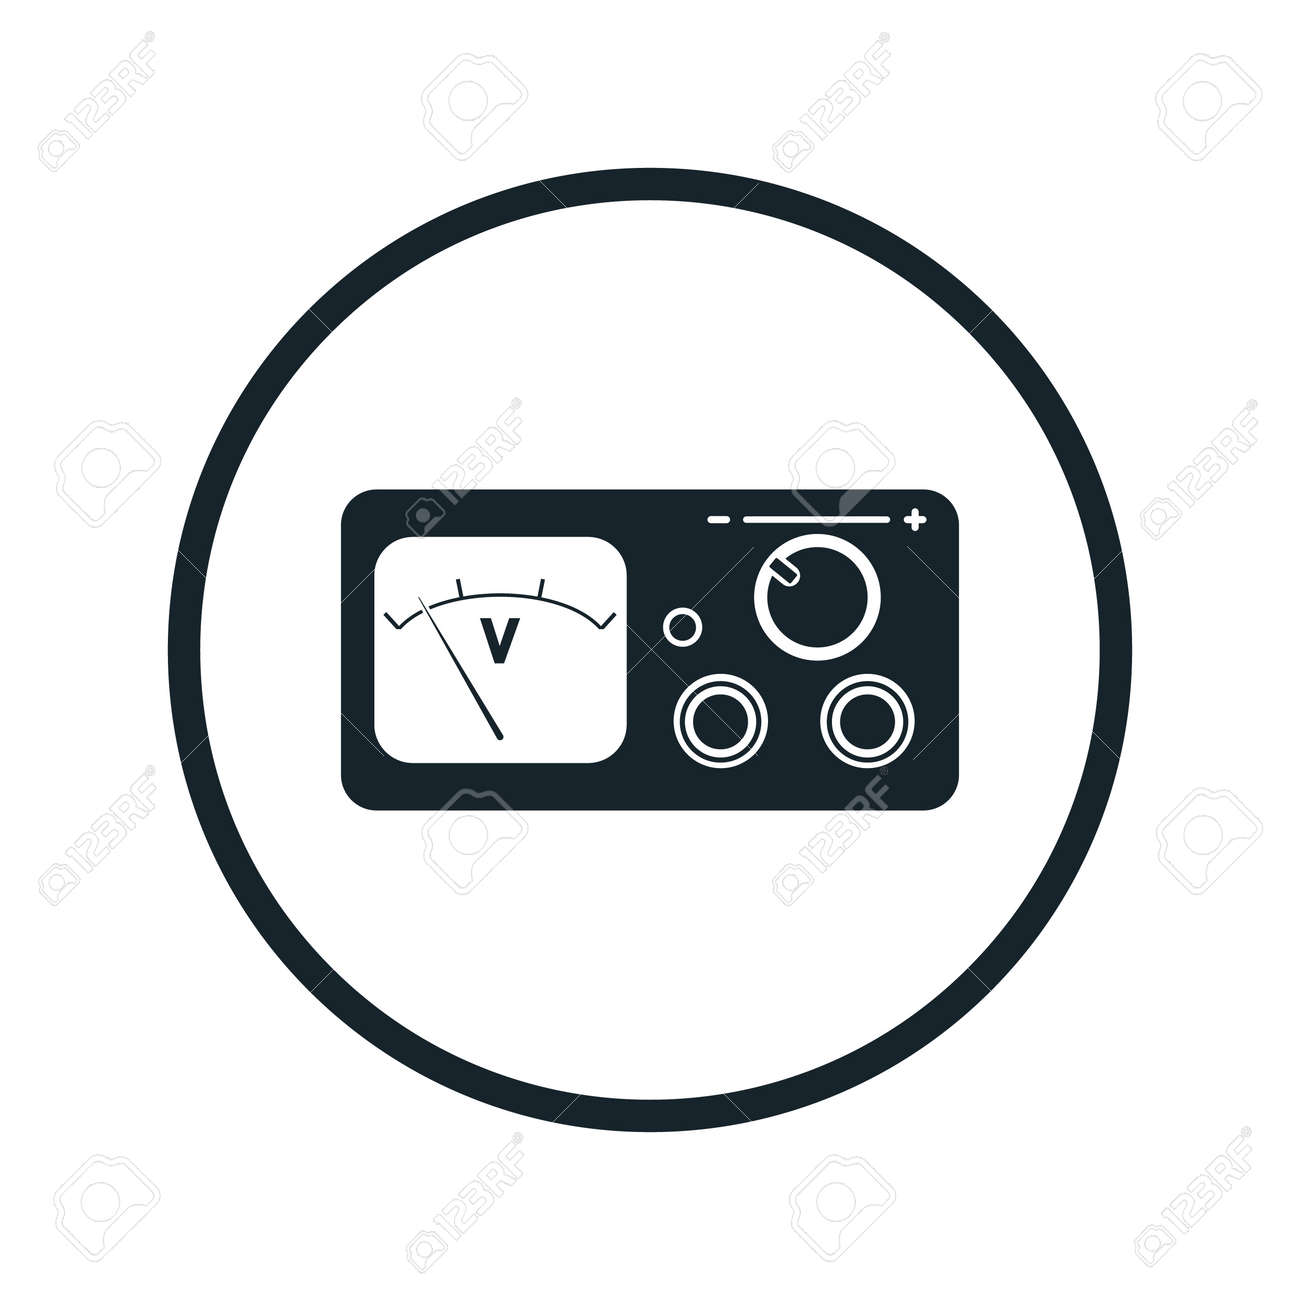 Power Supply Icon Royalty Free Cliparts, Vectors, And Stock ...